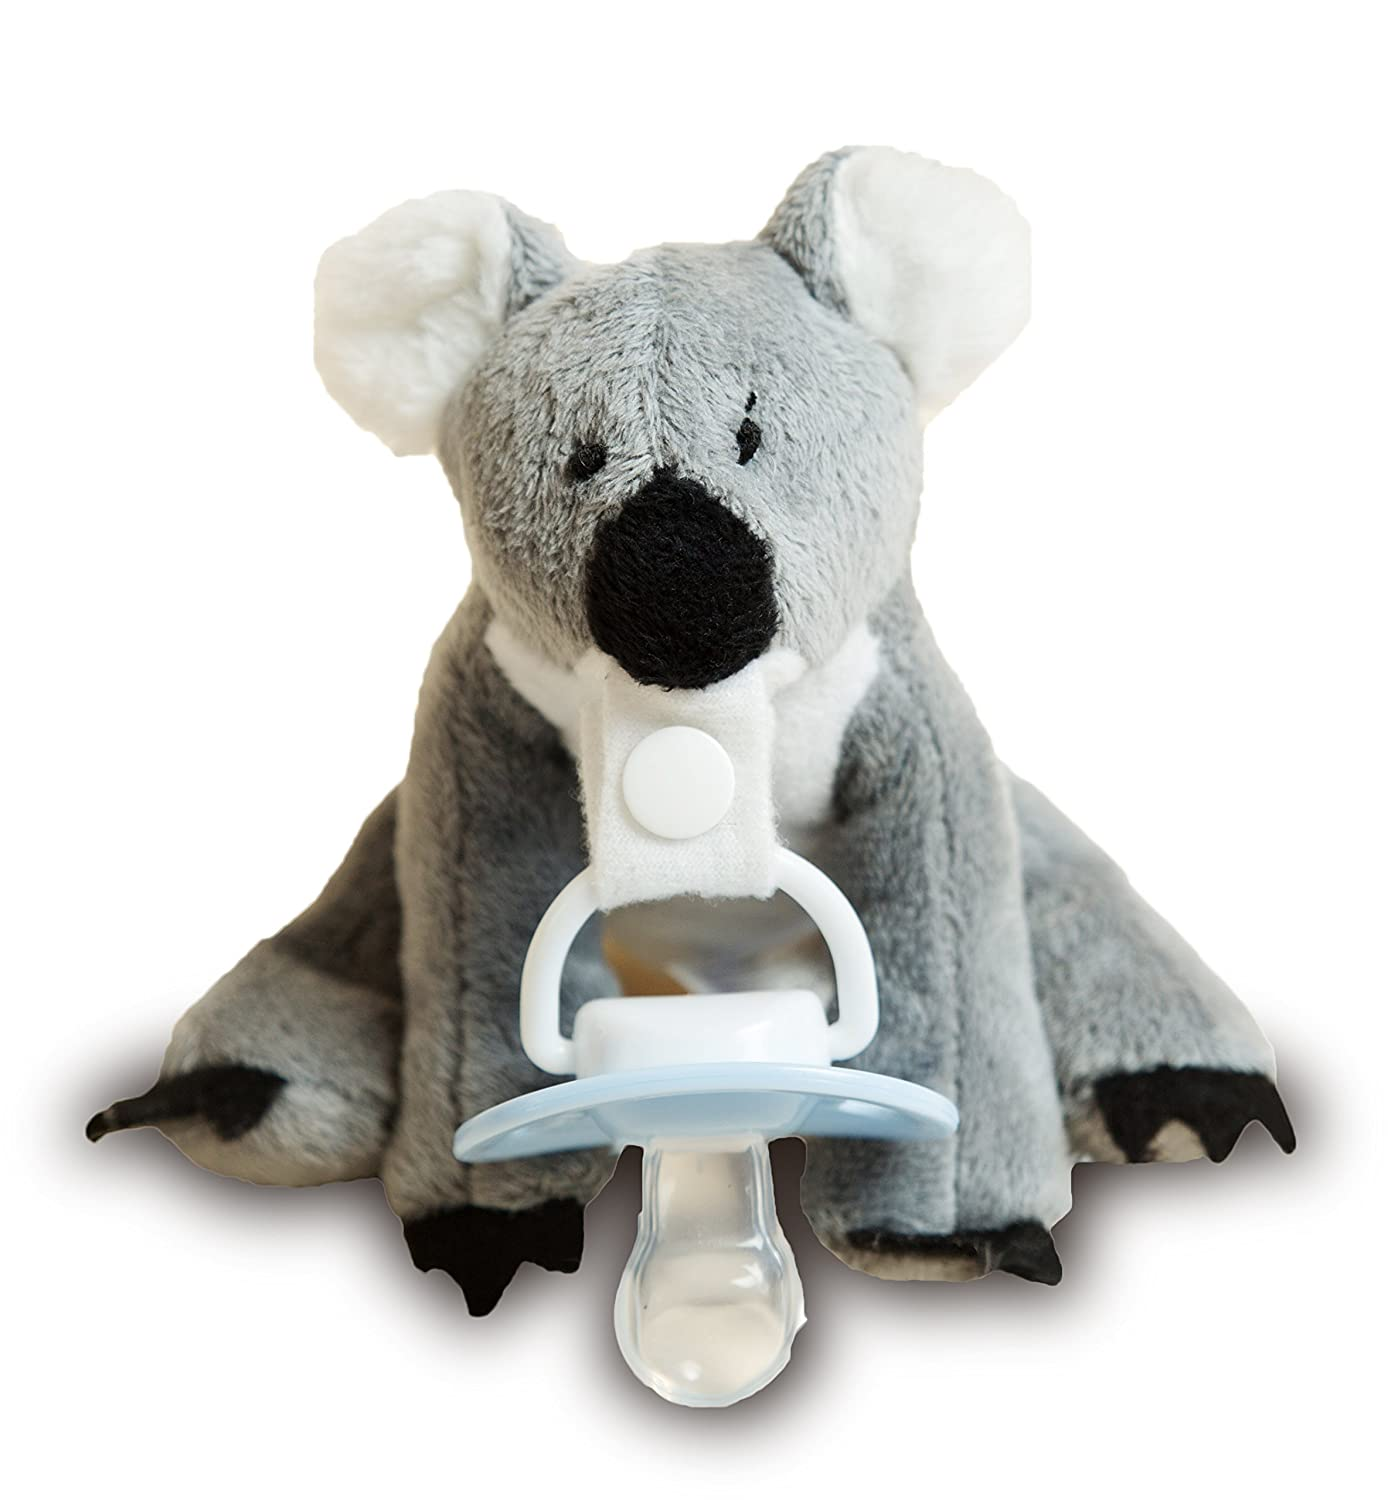 Amazon.com : ? Peluche Chupete Holder por * Karrie el Koala ...